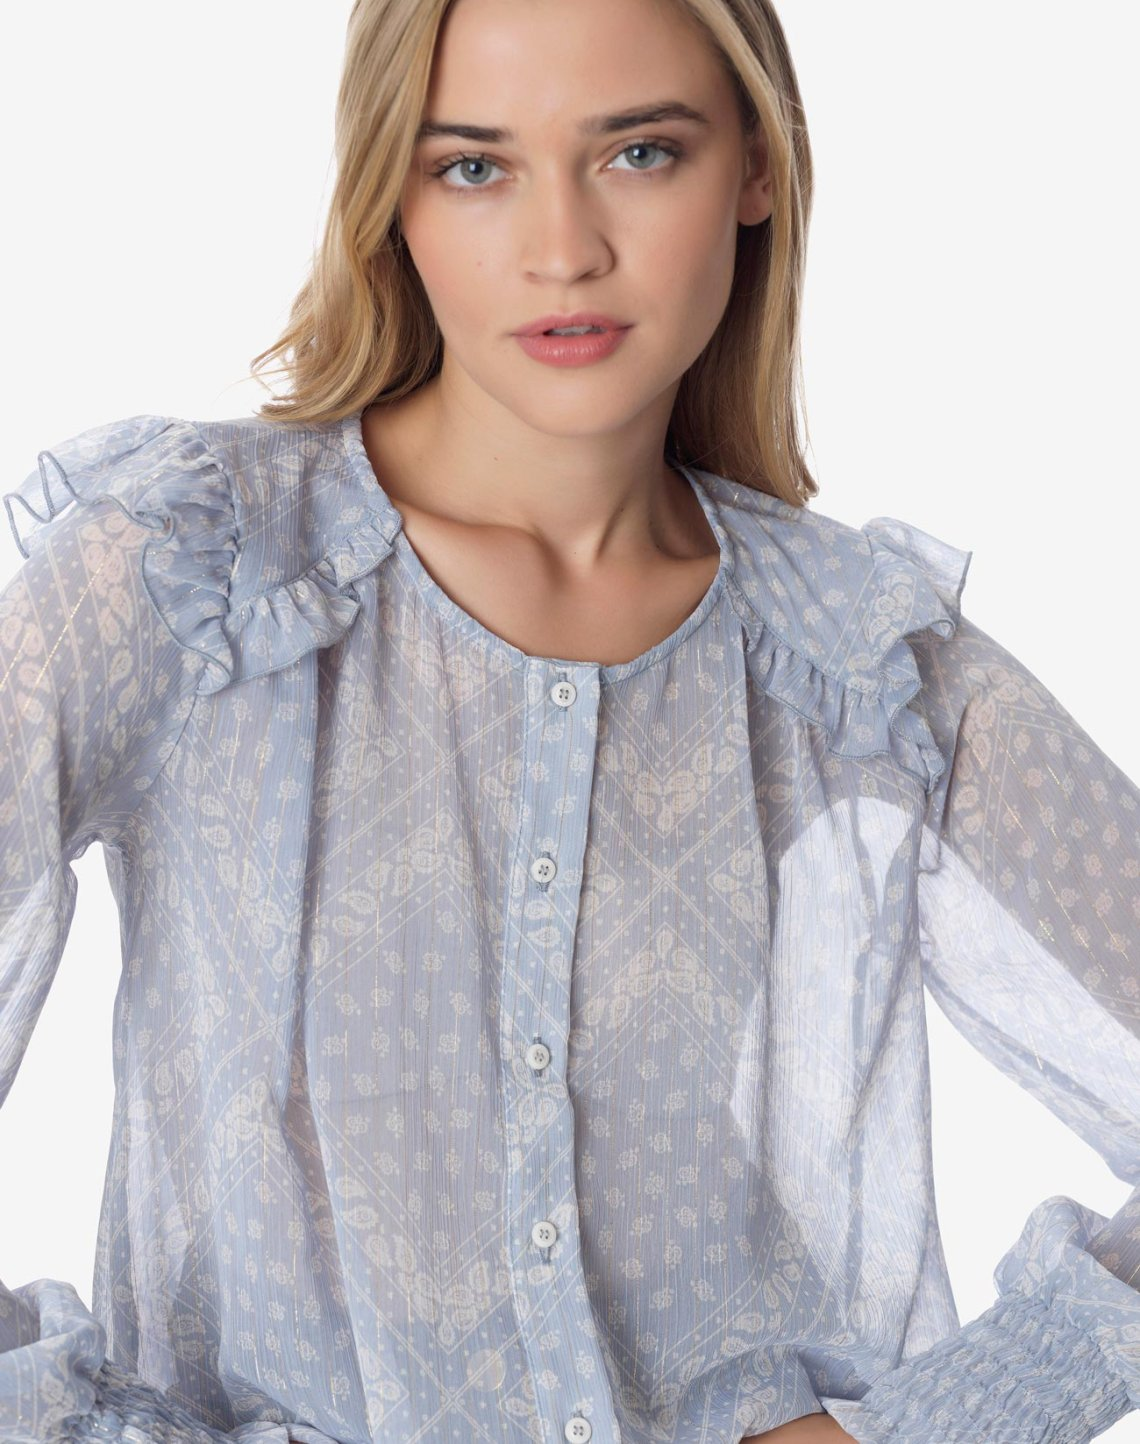 Printed shirt with ruffles